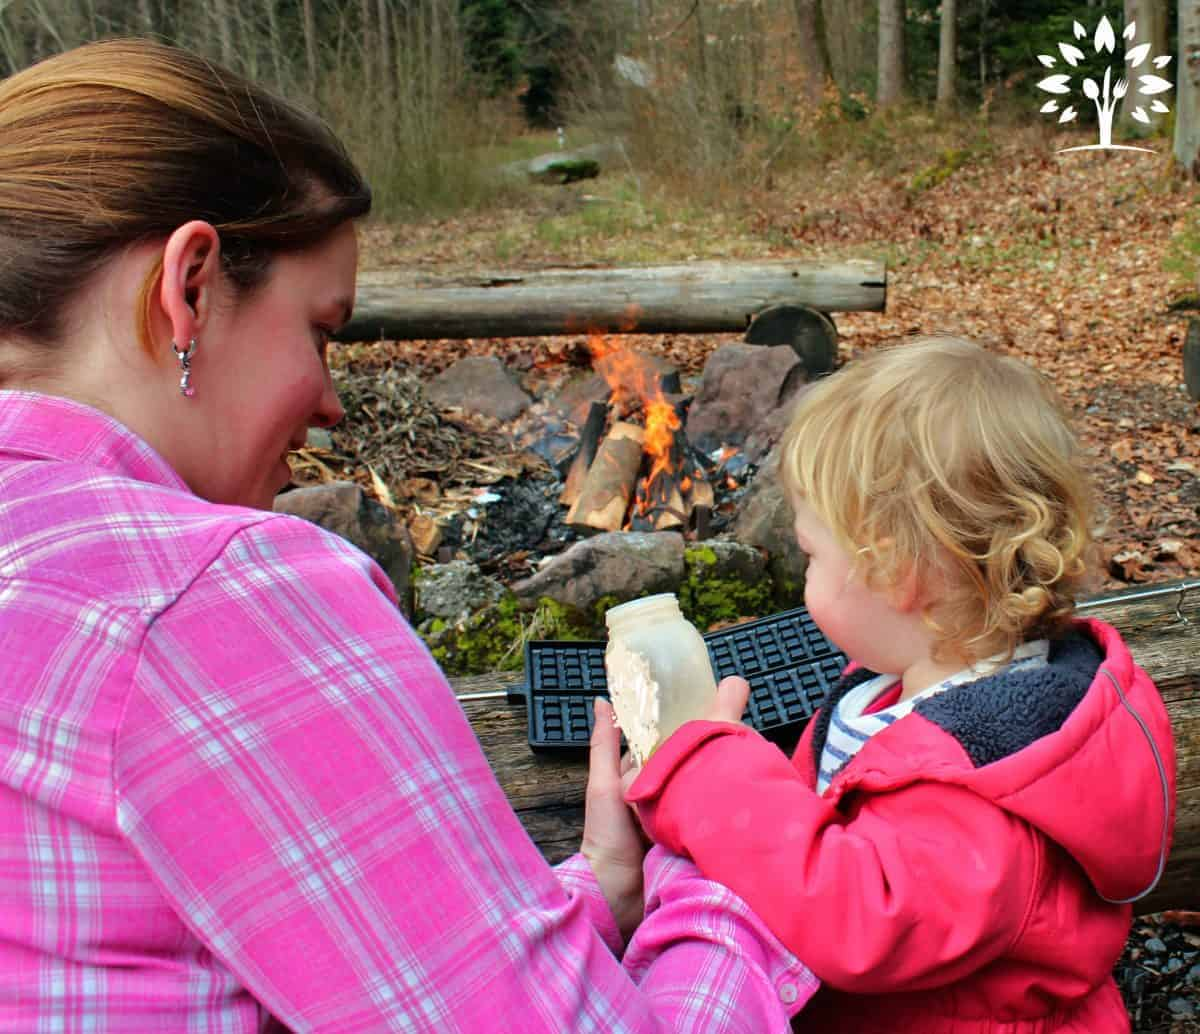 Outdoor Cooking with Kids: 7 Kid-Friendly Ways to Make Camp